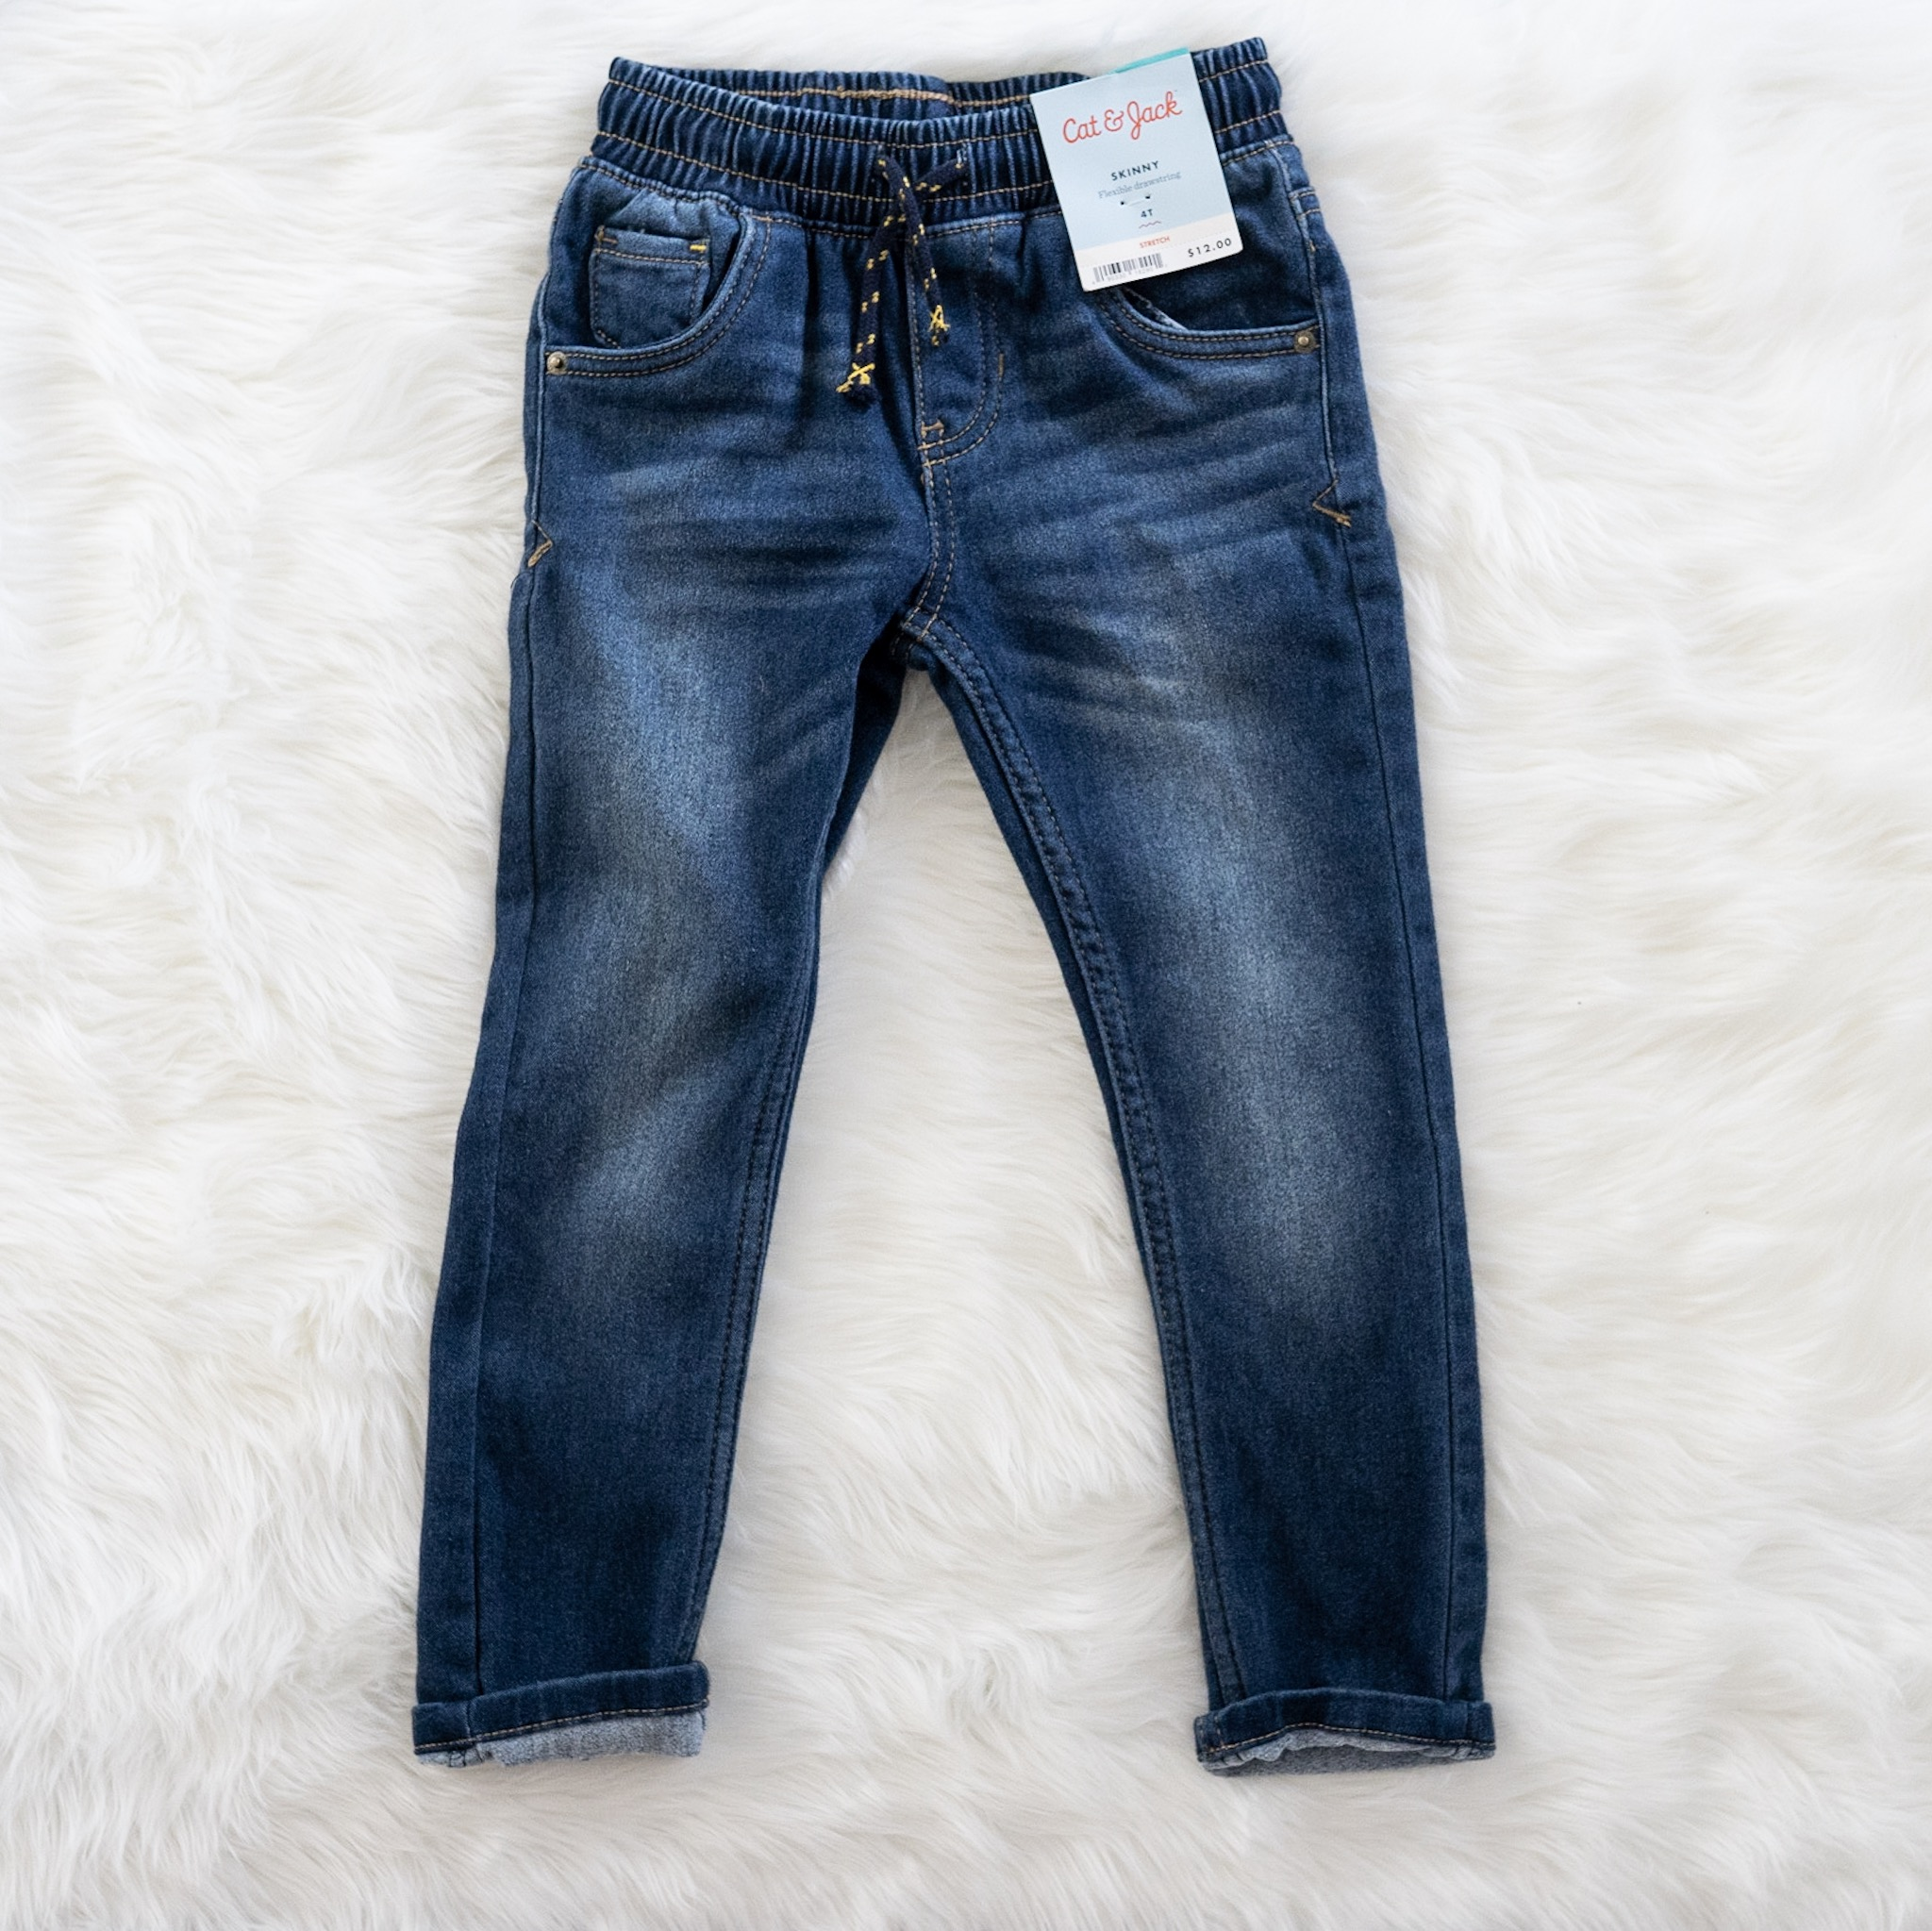 JEANS - SHOP HERE